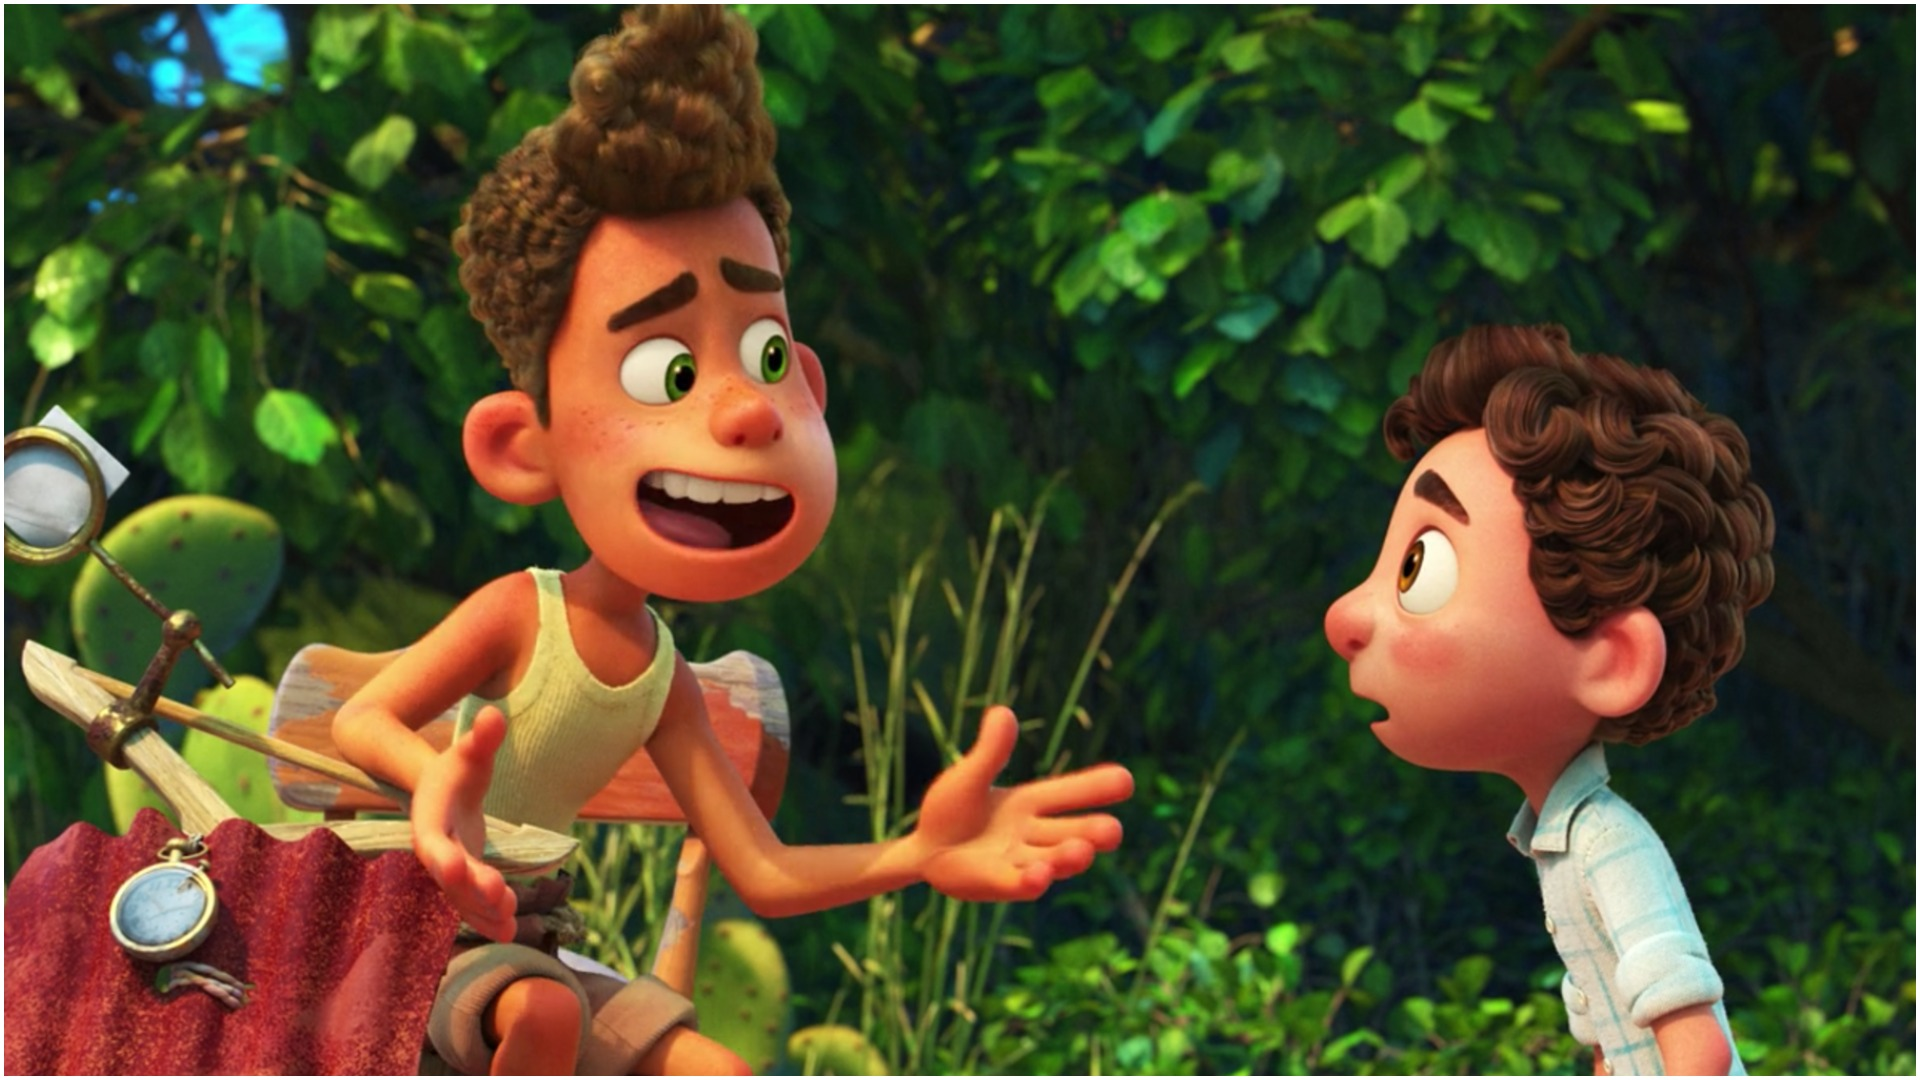 Silenzio Bruno! Luca director explains the meaning behind the Pixar movie's marvelous mantra